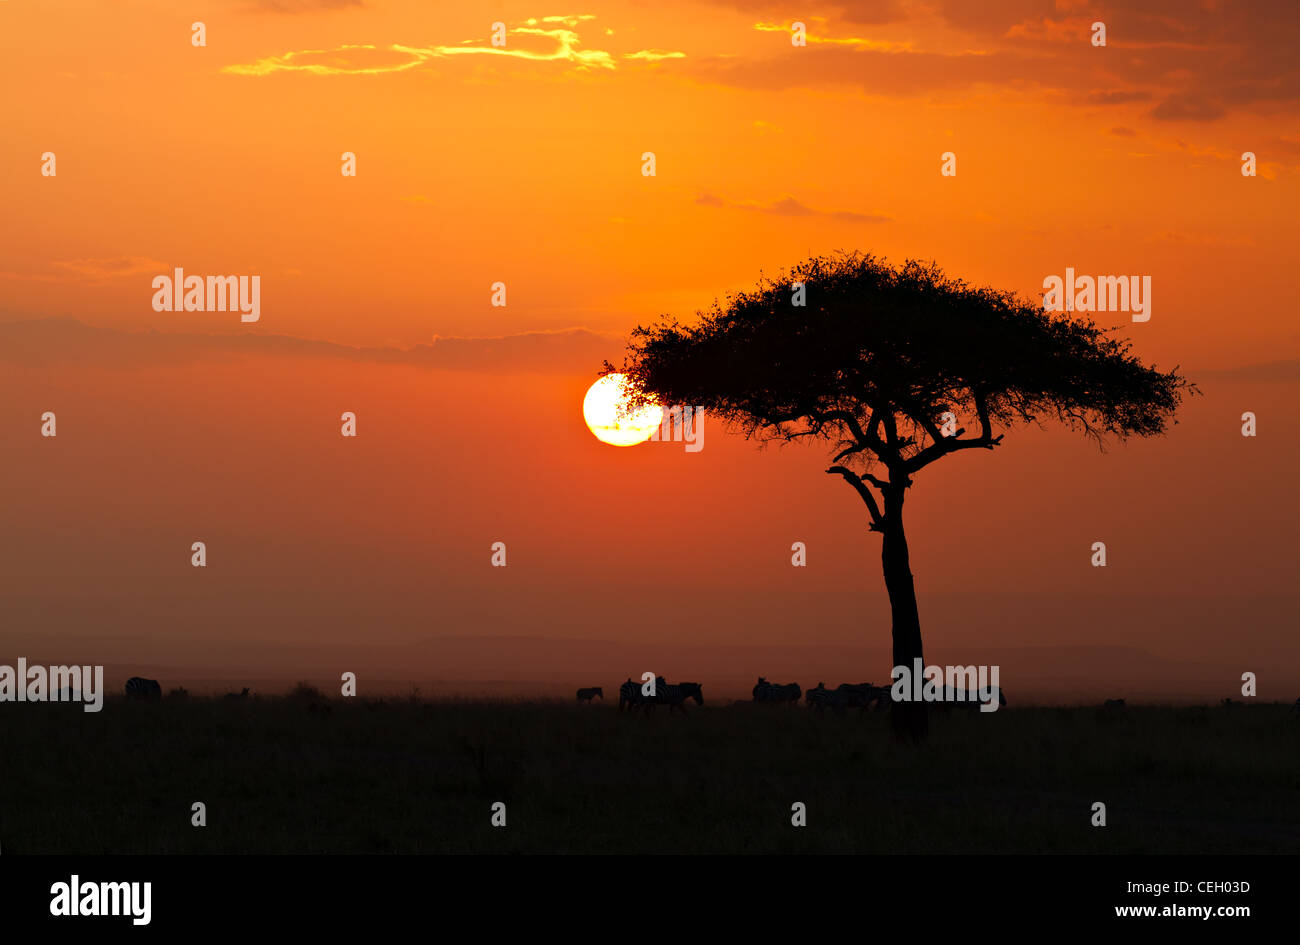 Sunset in the Masai Maria National Reserve with Acacia tree and silhouttes of Zebras, Keya, Africa - Stock Image